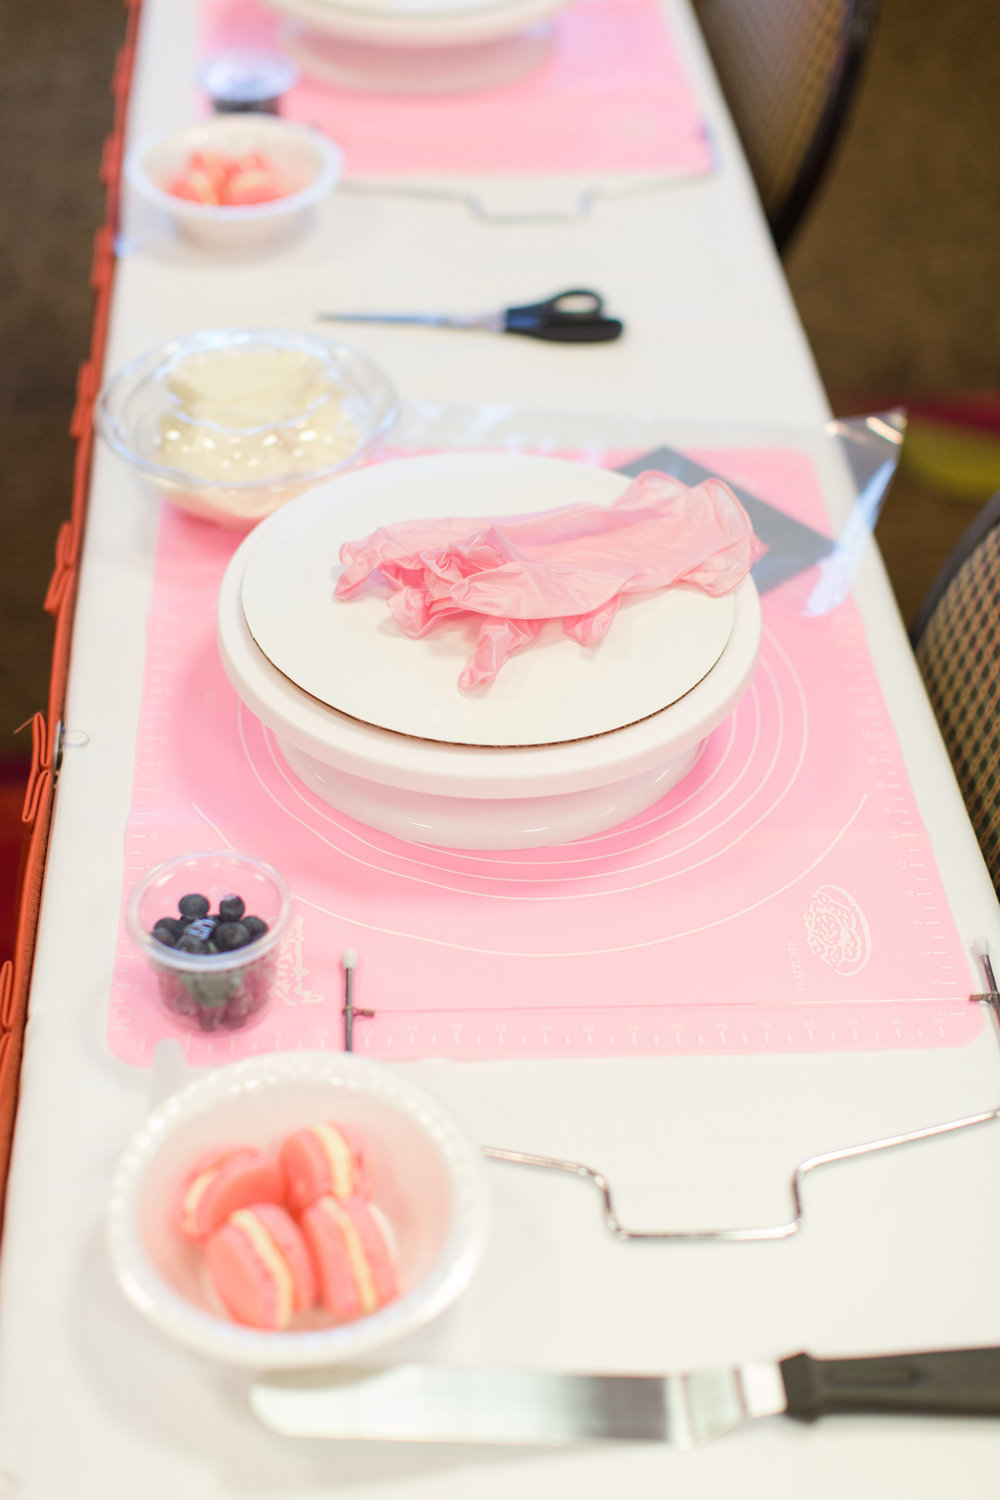 Sorby Sweets Cake Class 2 3 18-0002.jpg